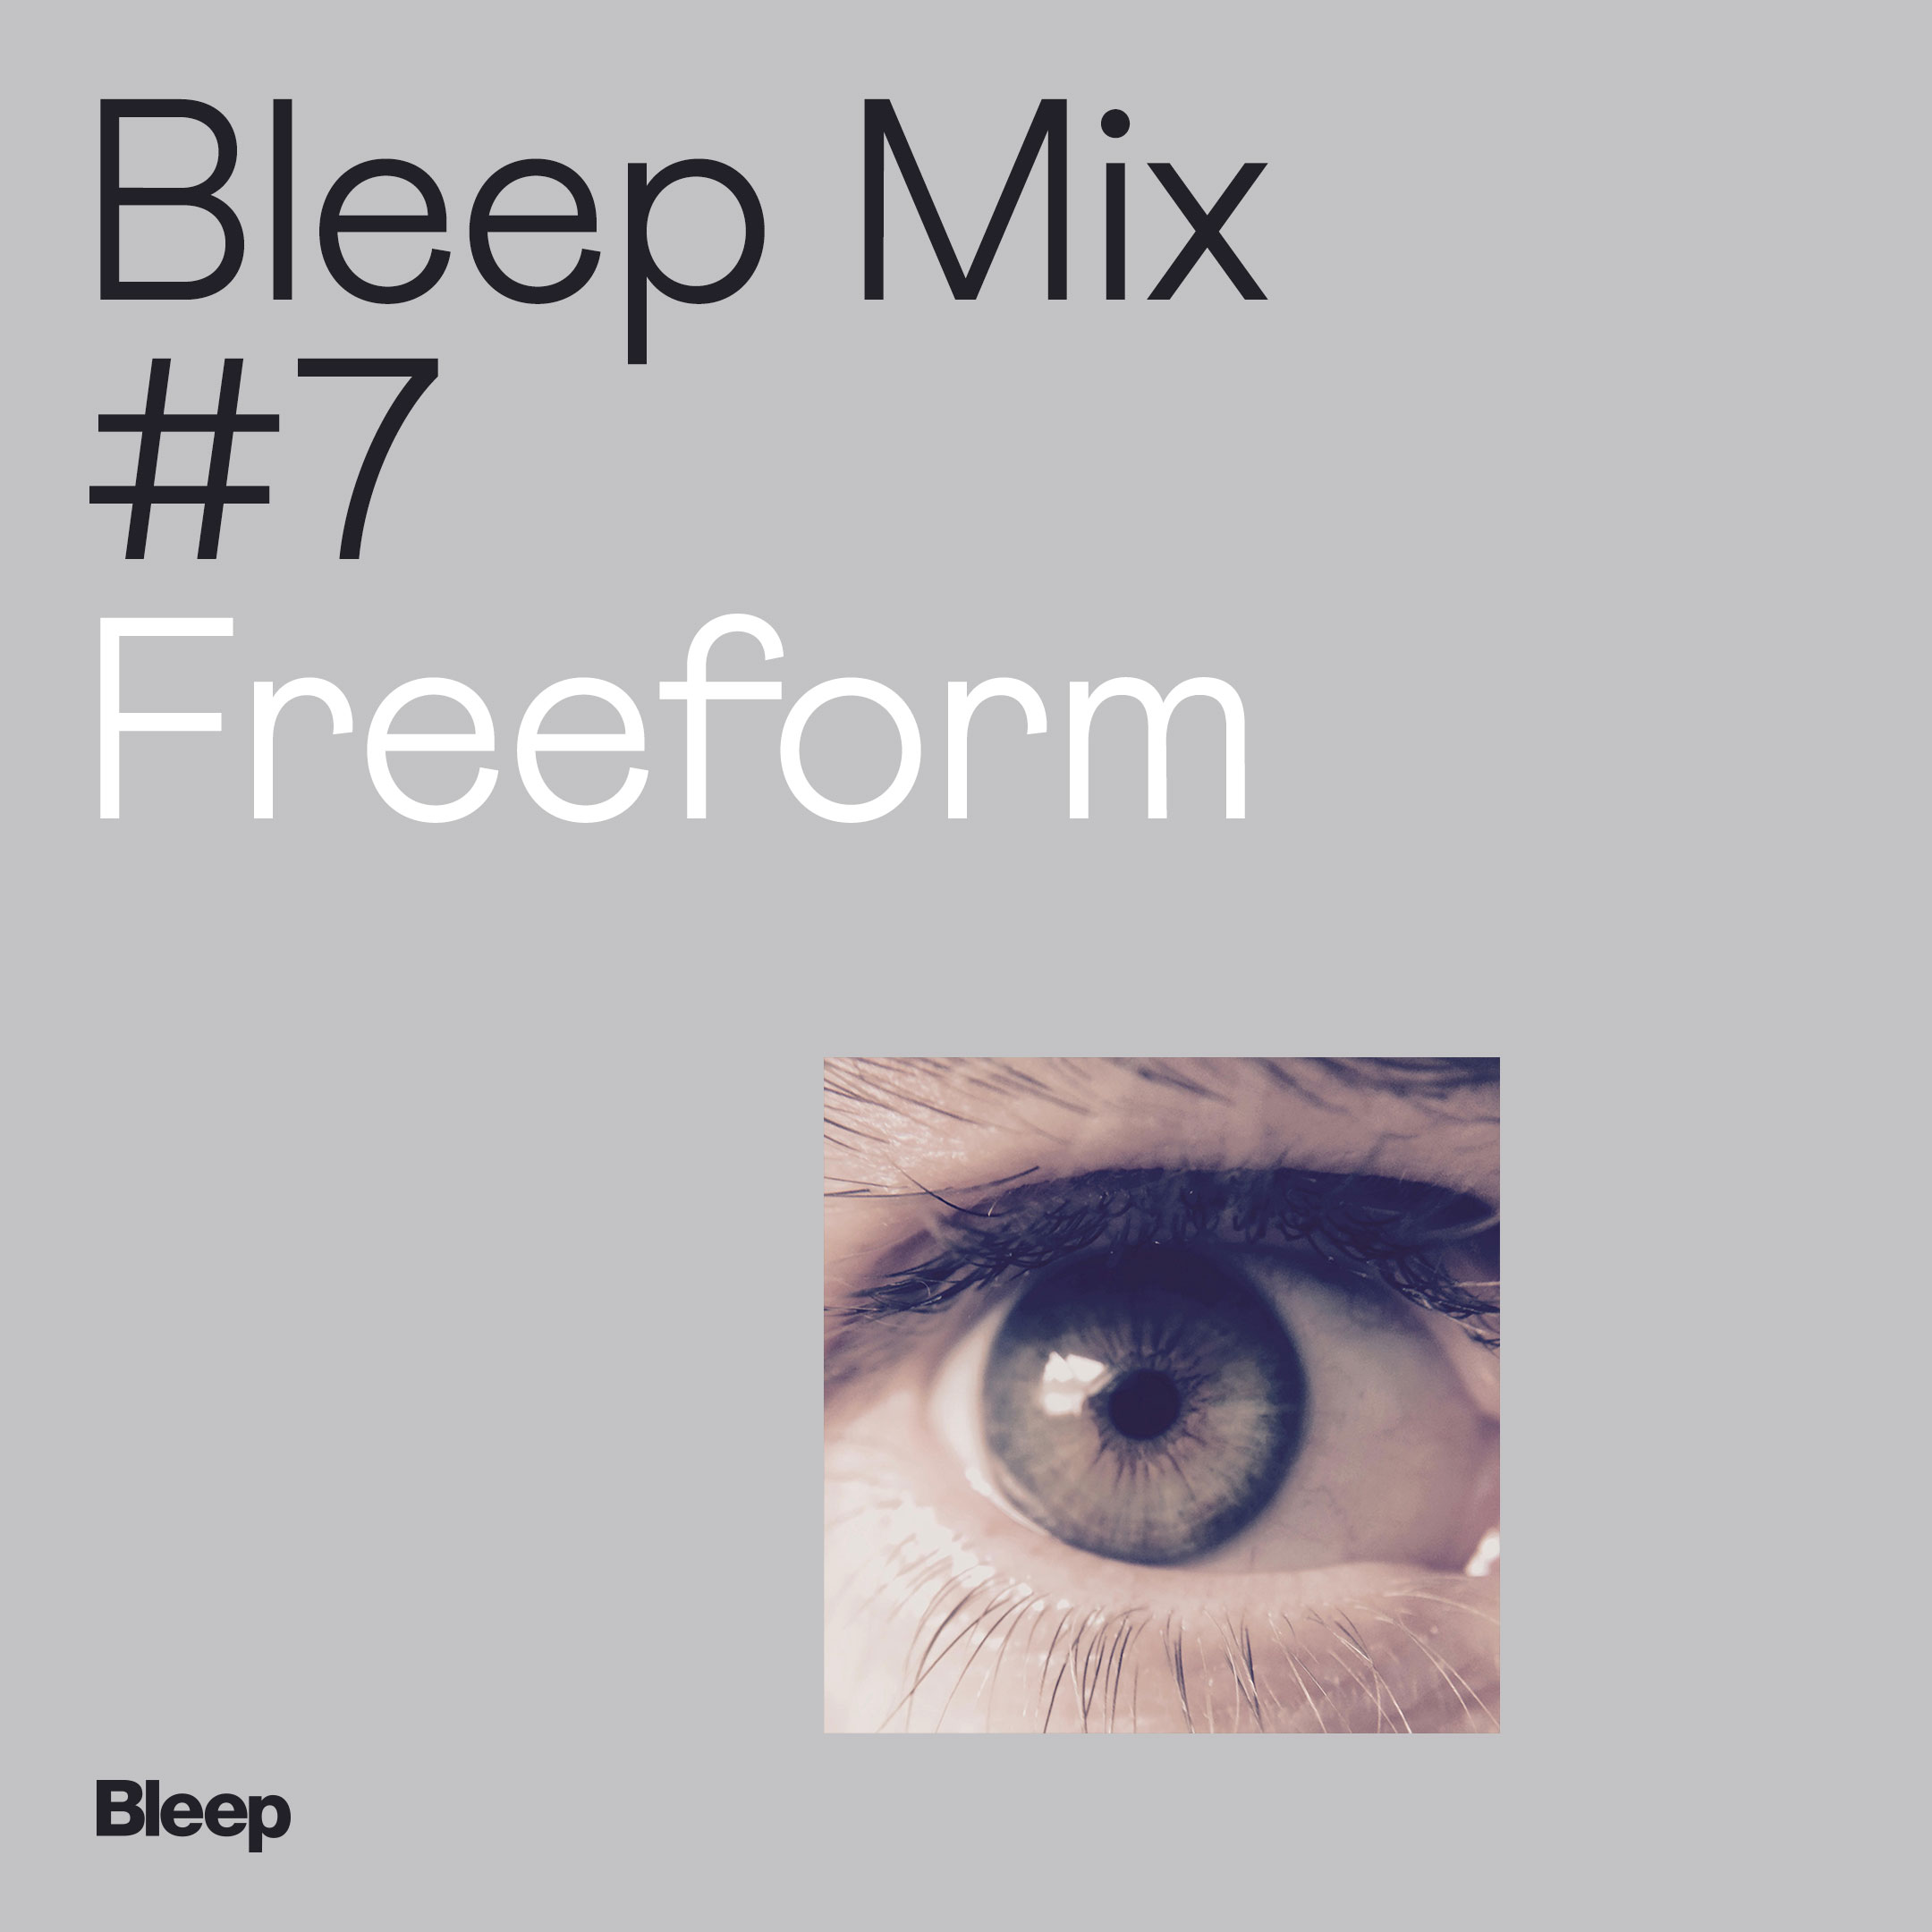 Bleep Mix #7 - Freeform